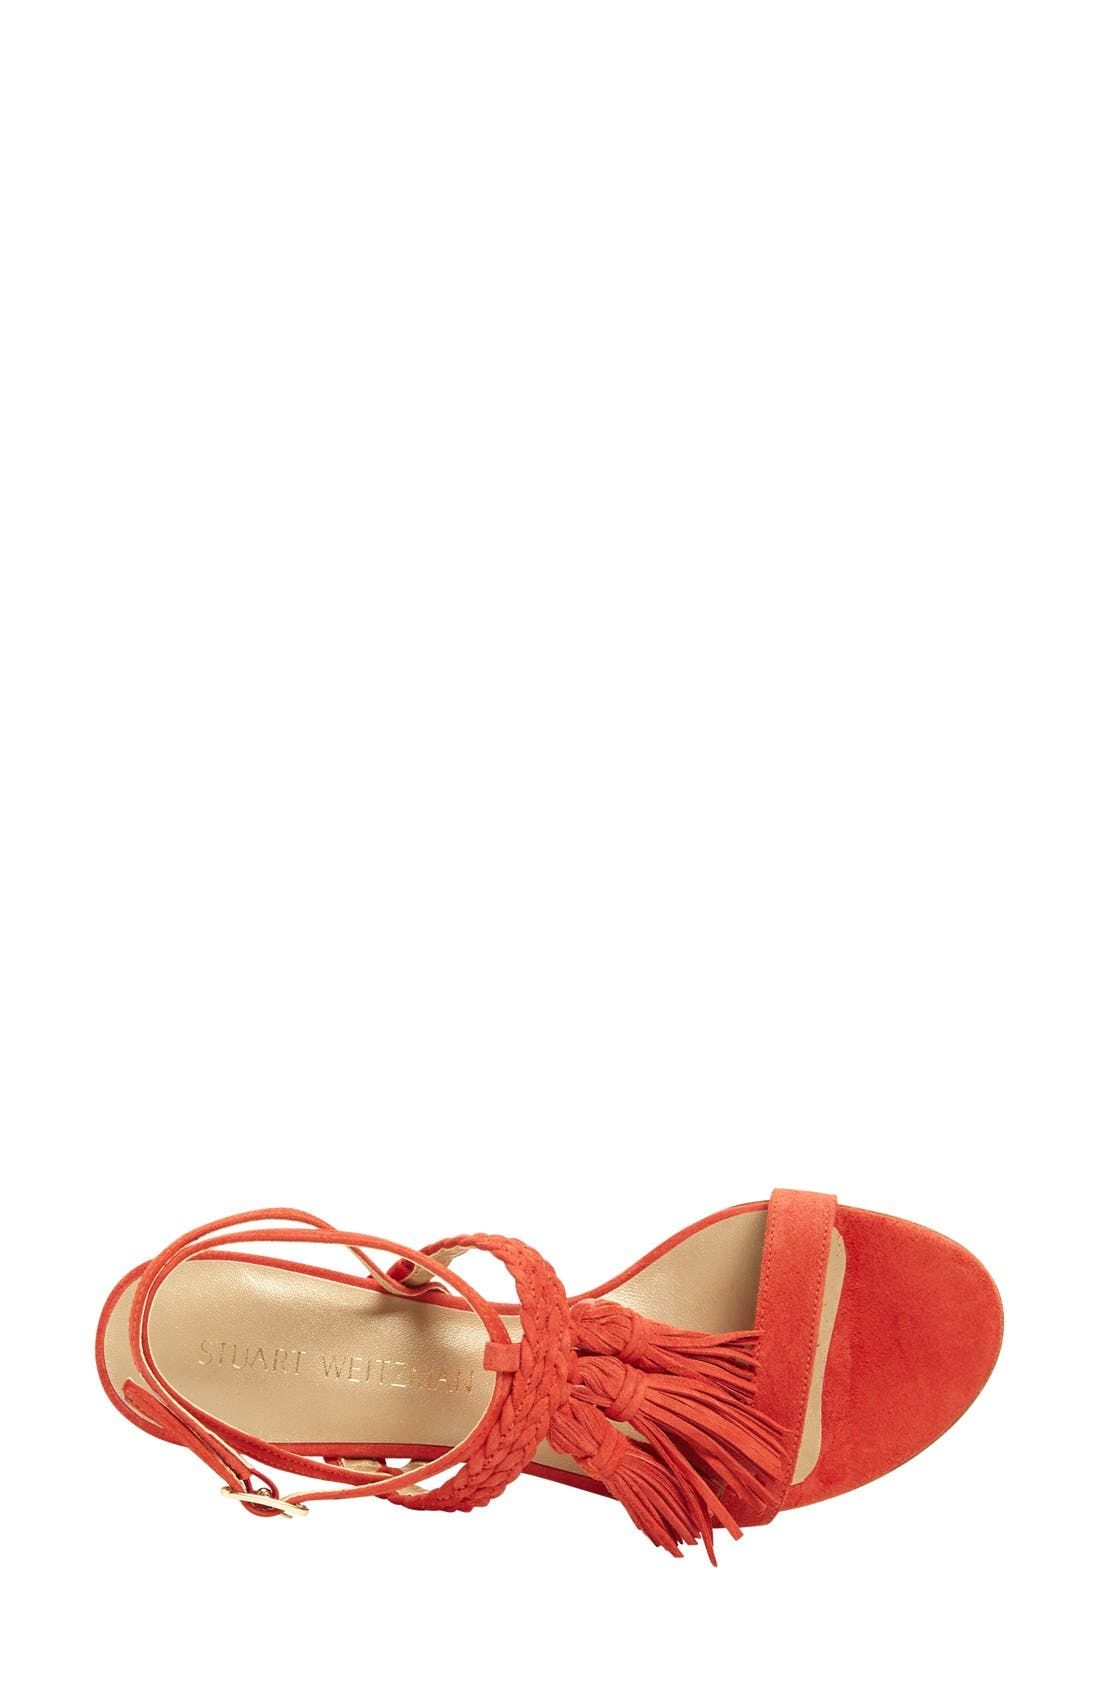 'Tasselmania' Strappy Sandal,                             Alternate thumbnail 12, color,